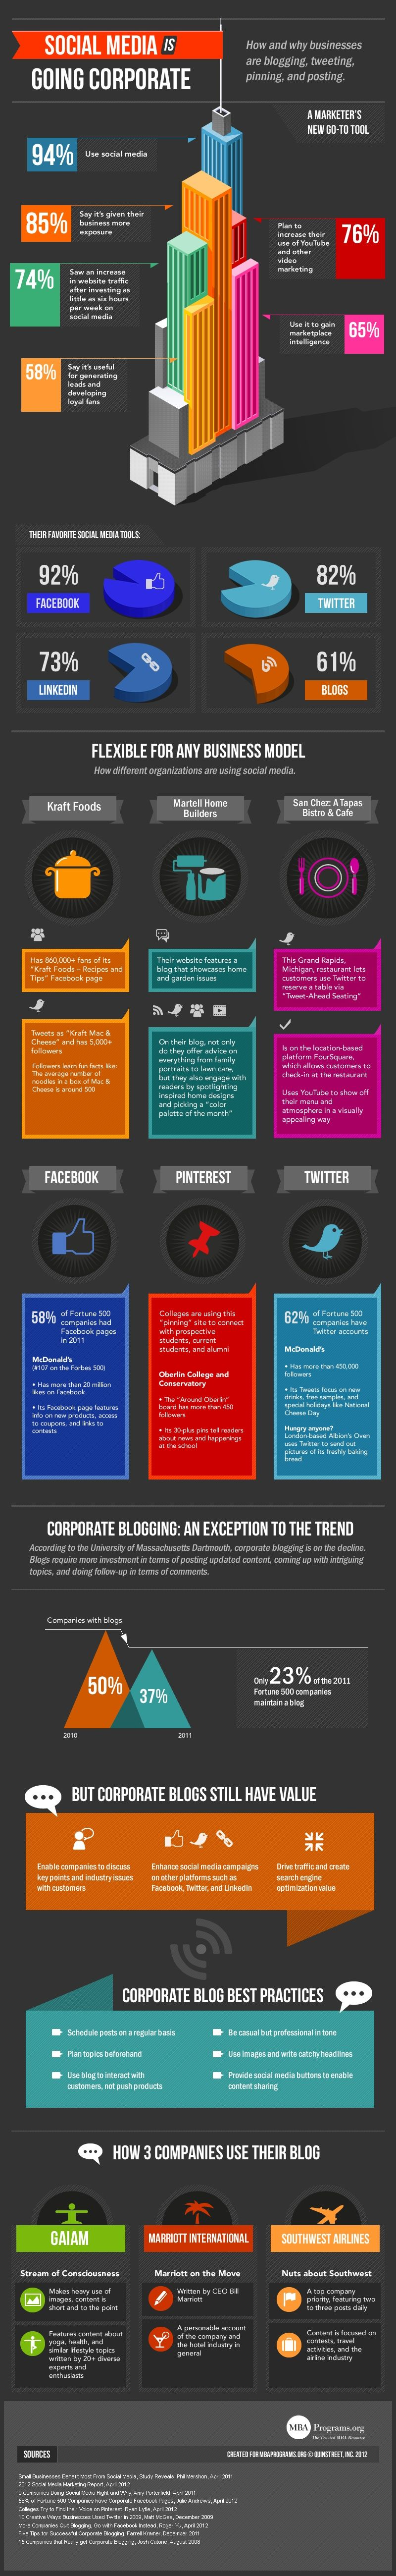 Social Media Is Going Corporate [INFOGRAPHIC]